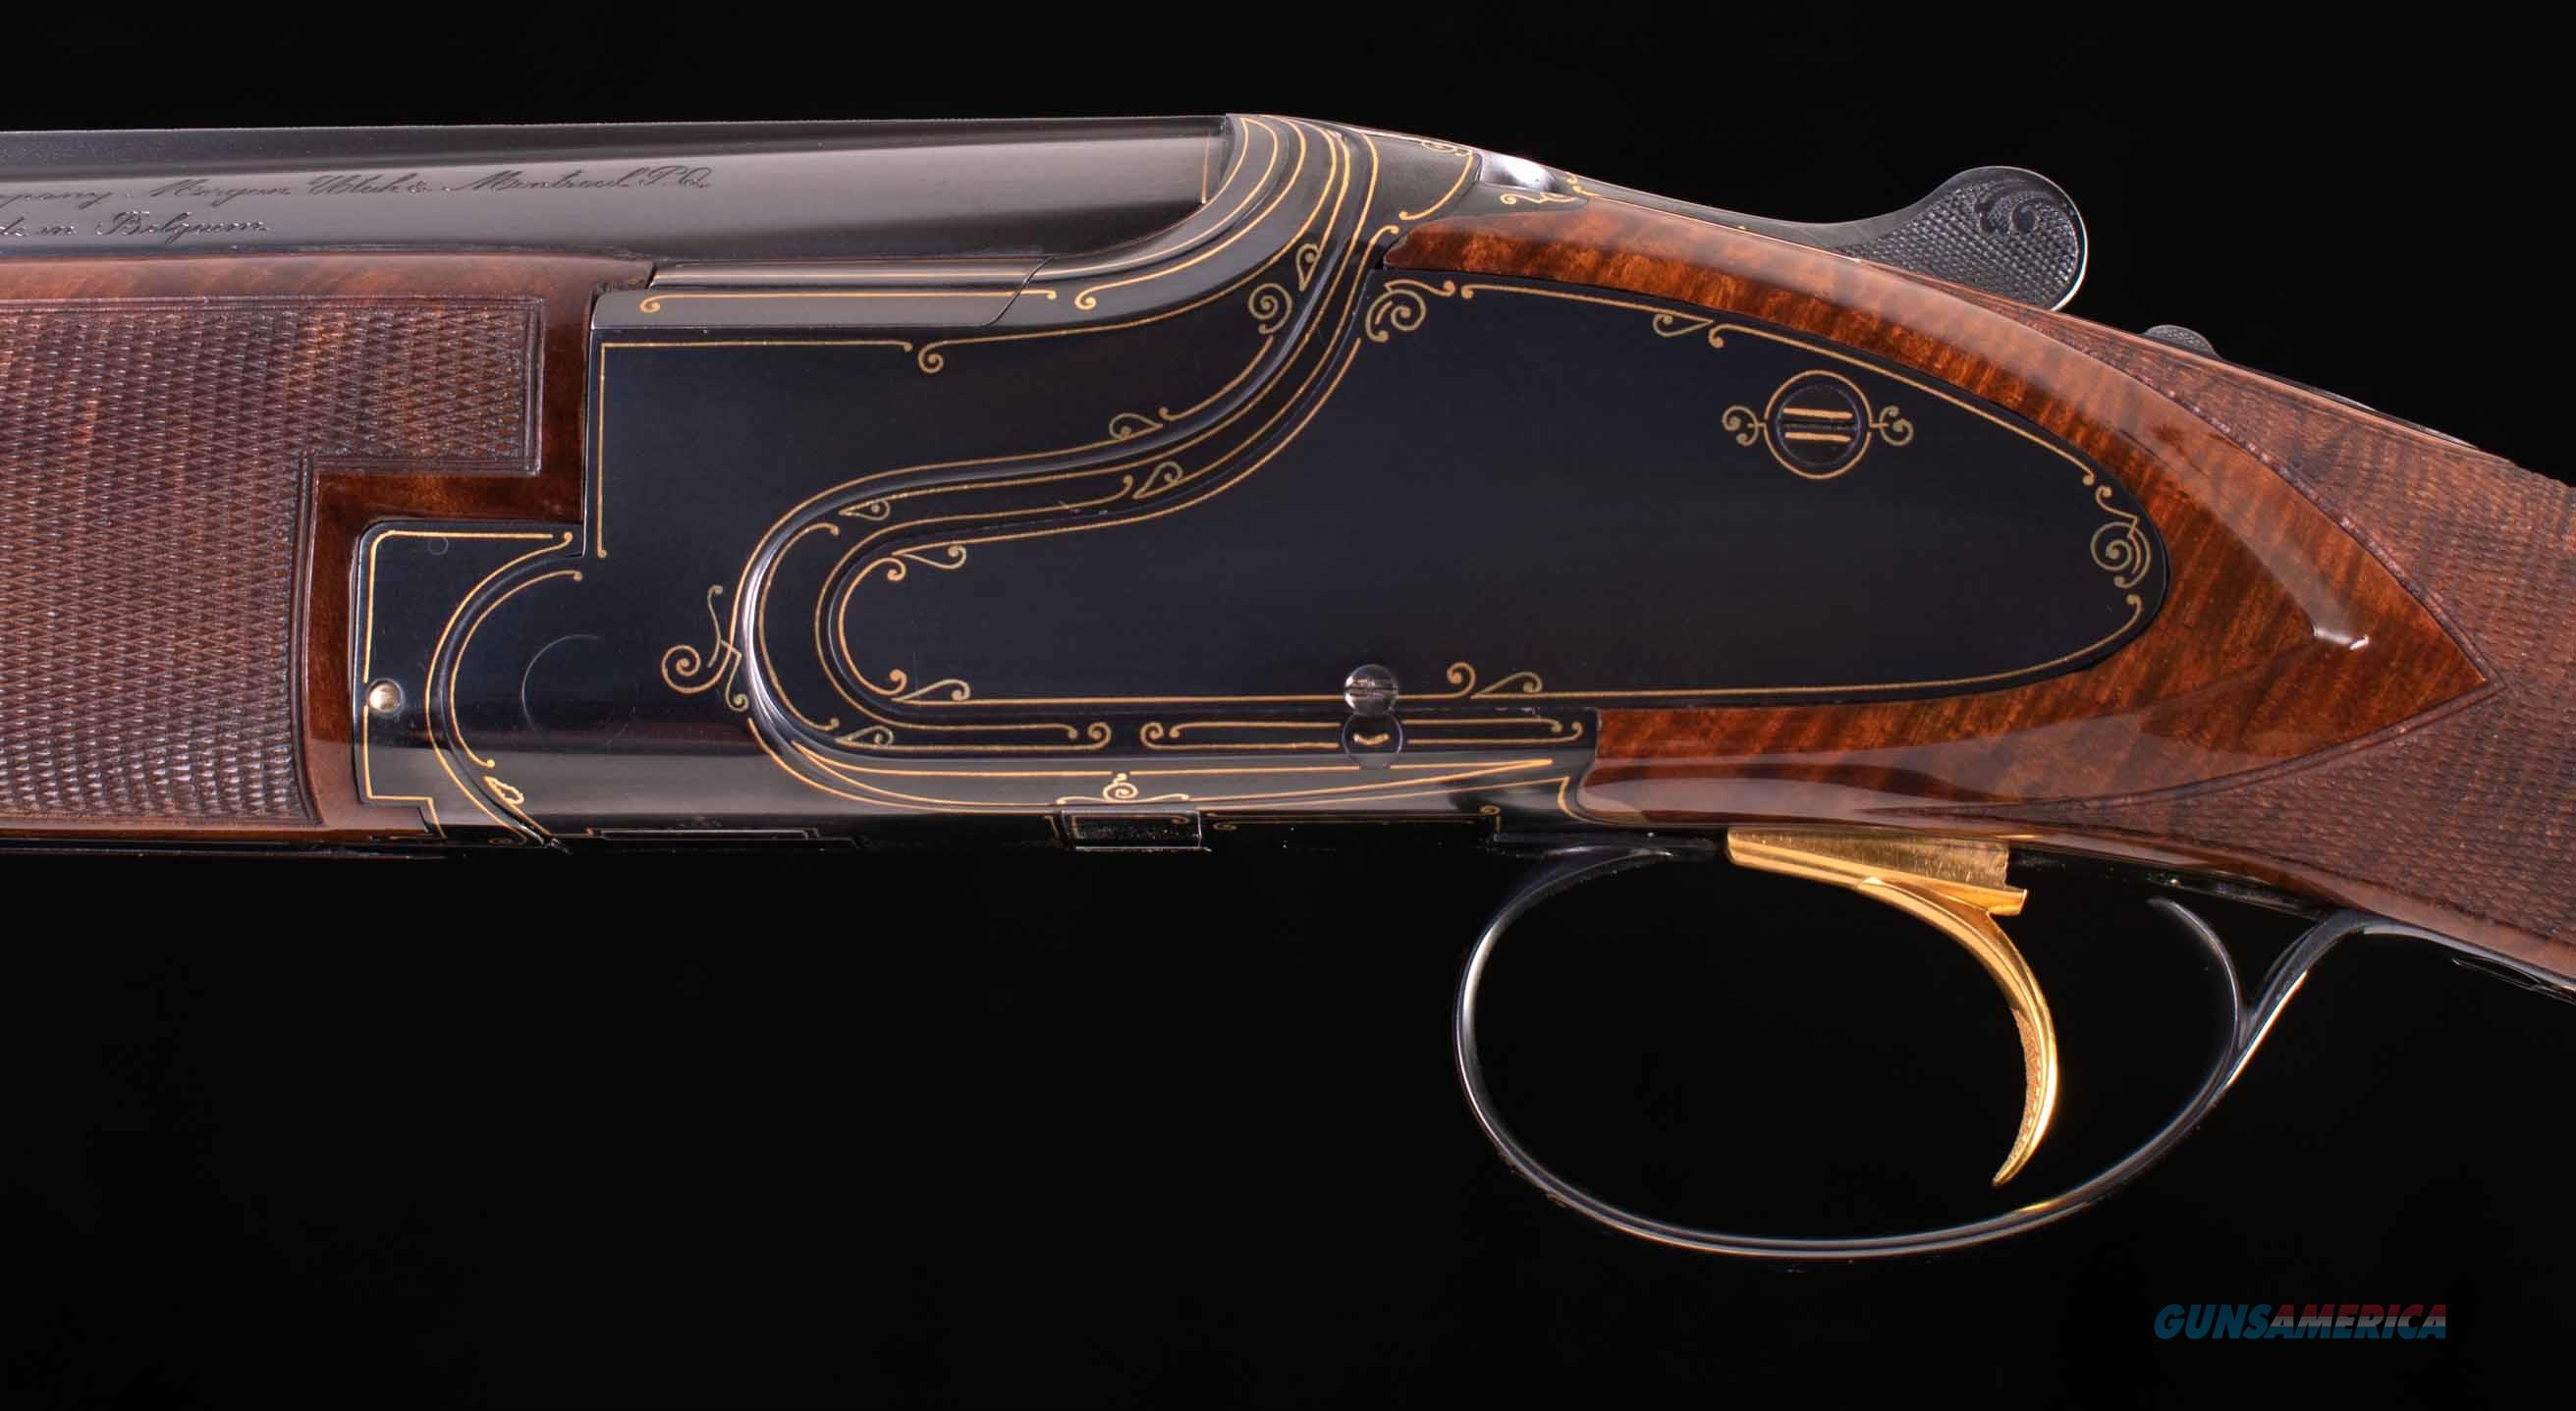 Browning Superposed 20 Gauge – C GRADE EXHIBITION, F-1 TYPE, SIDEPLATES, vintage firearms inc